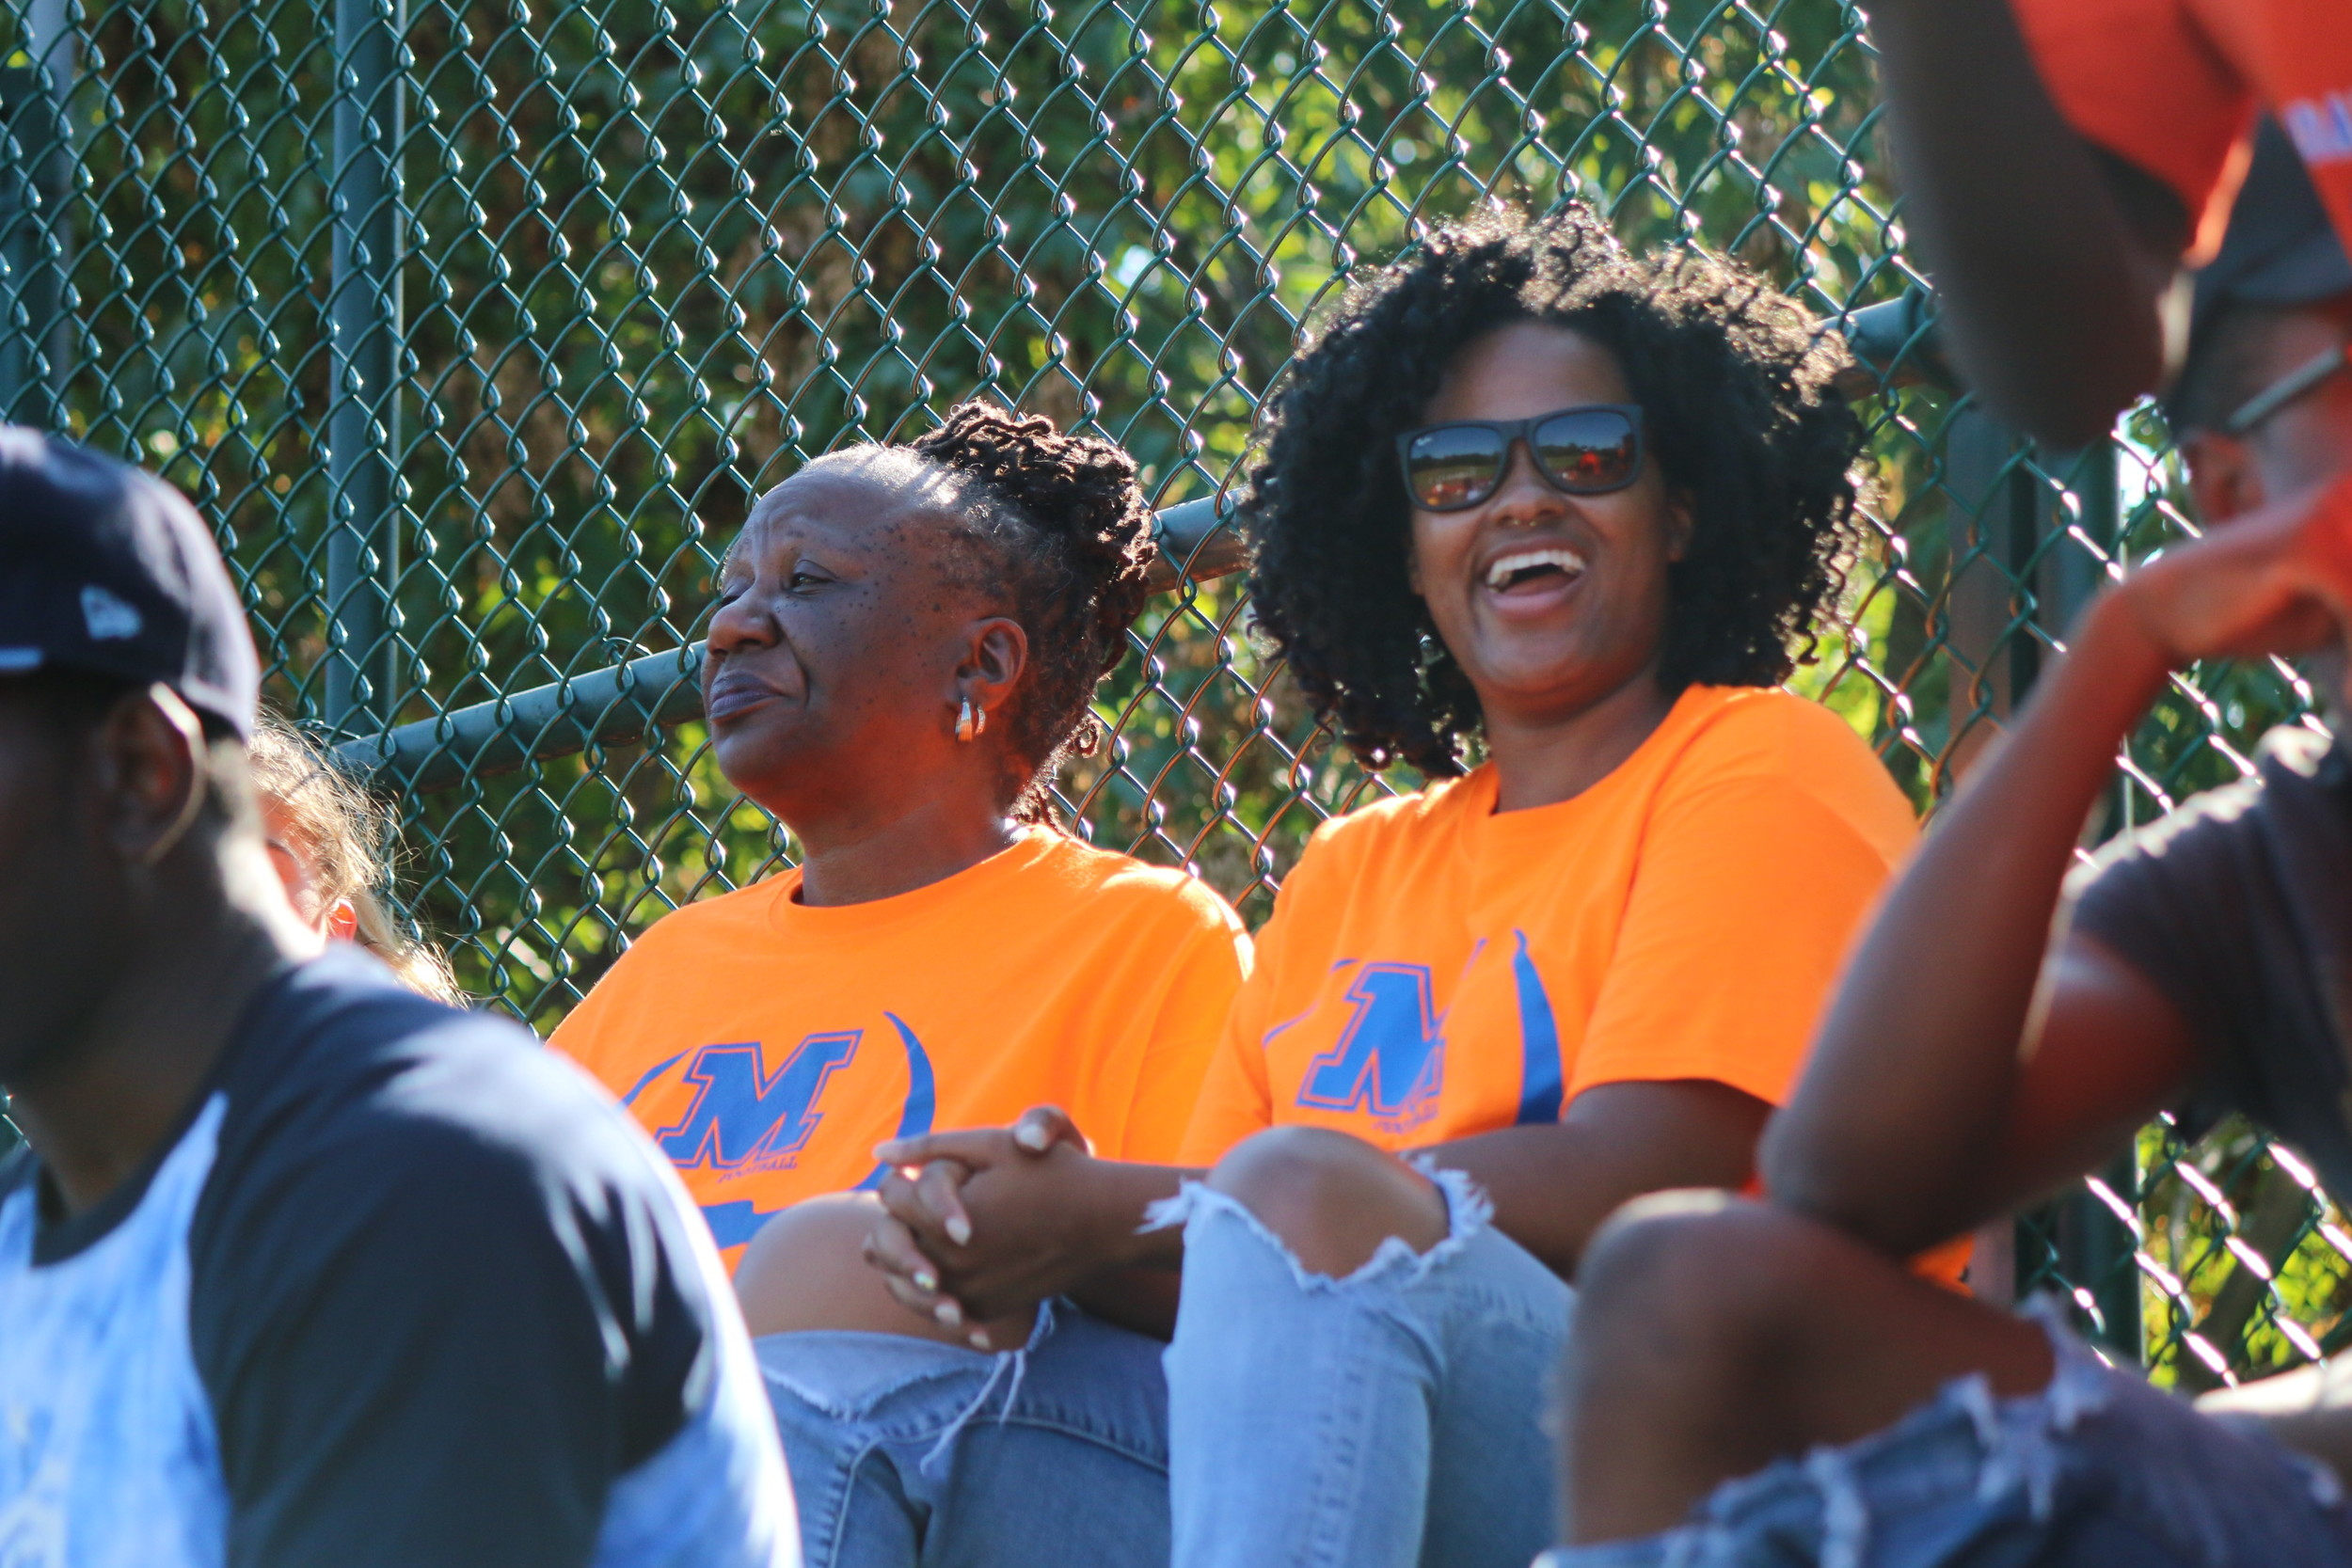 Norma Britt, left, and her daughter Alma Britt, at a Malverne High School football game last September.